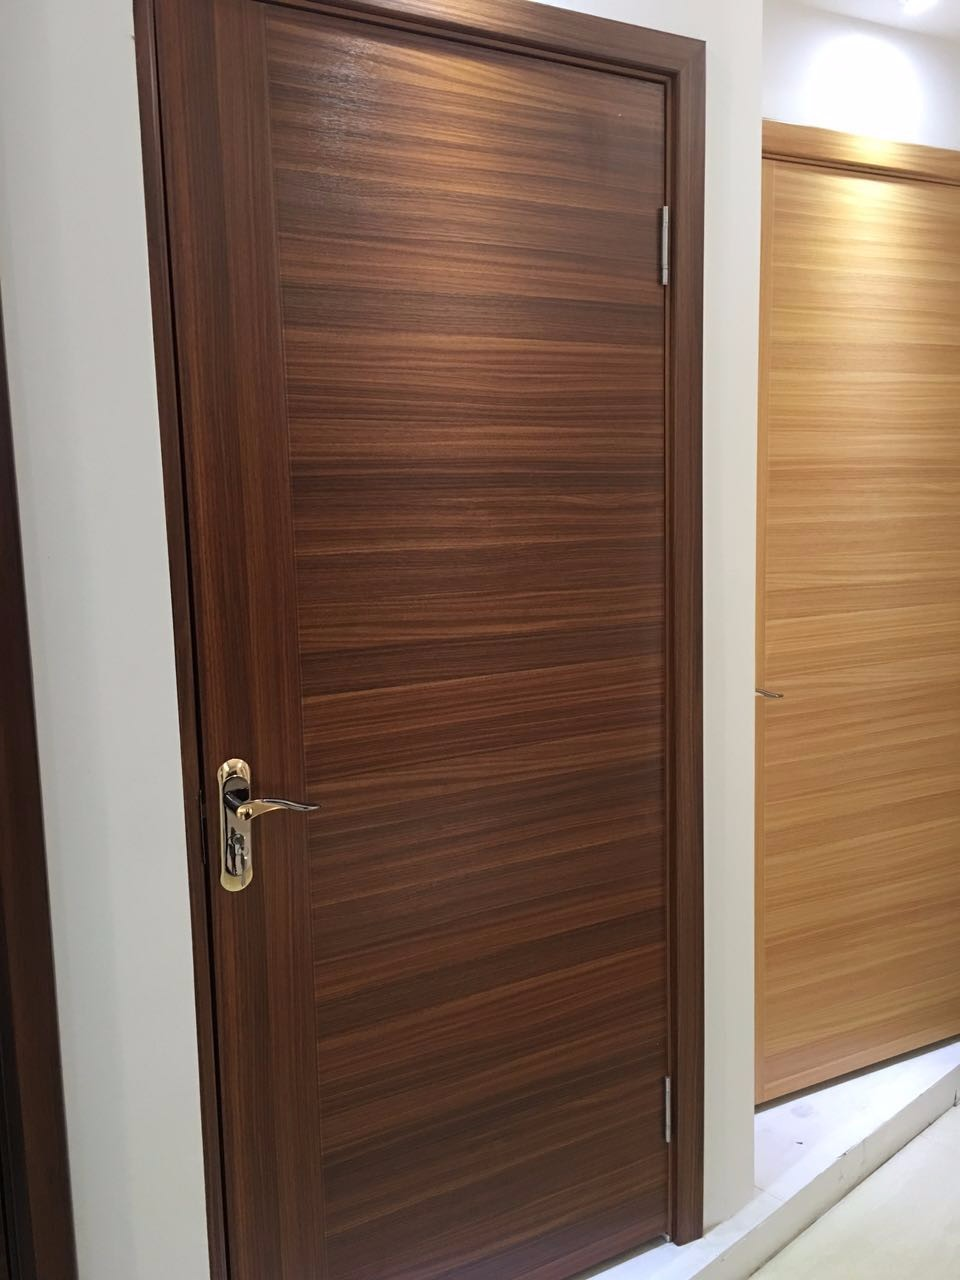 Modern house design wood veneer door skin melamine for Wood veneer interior doors